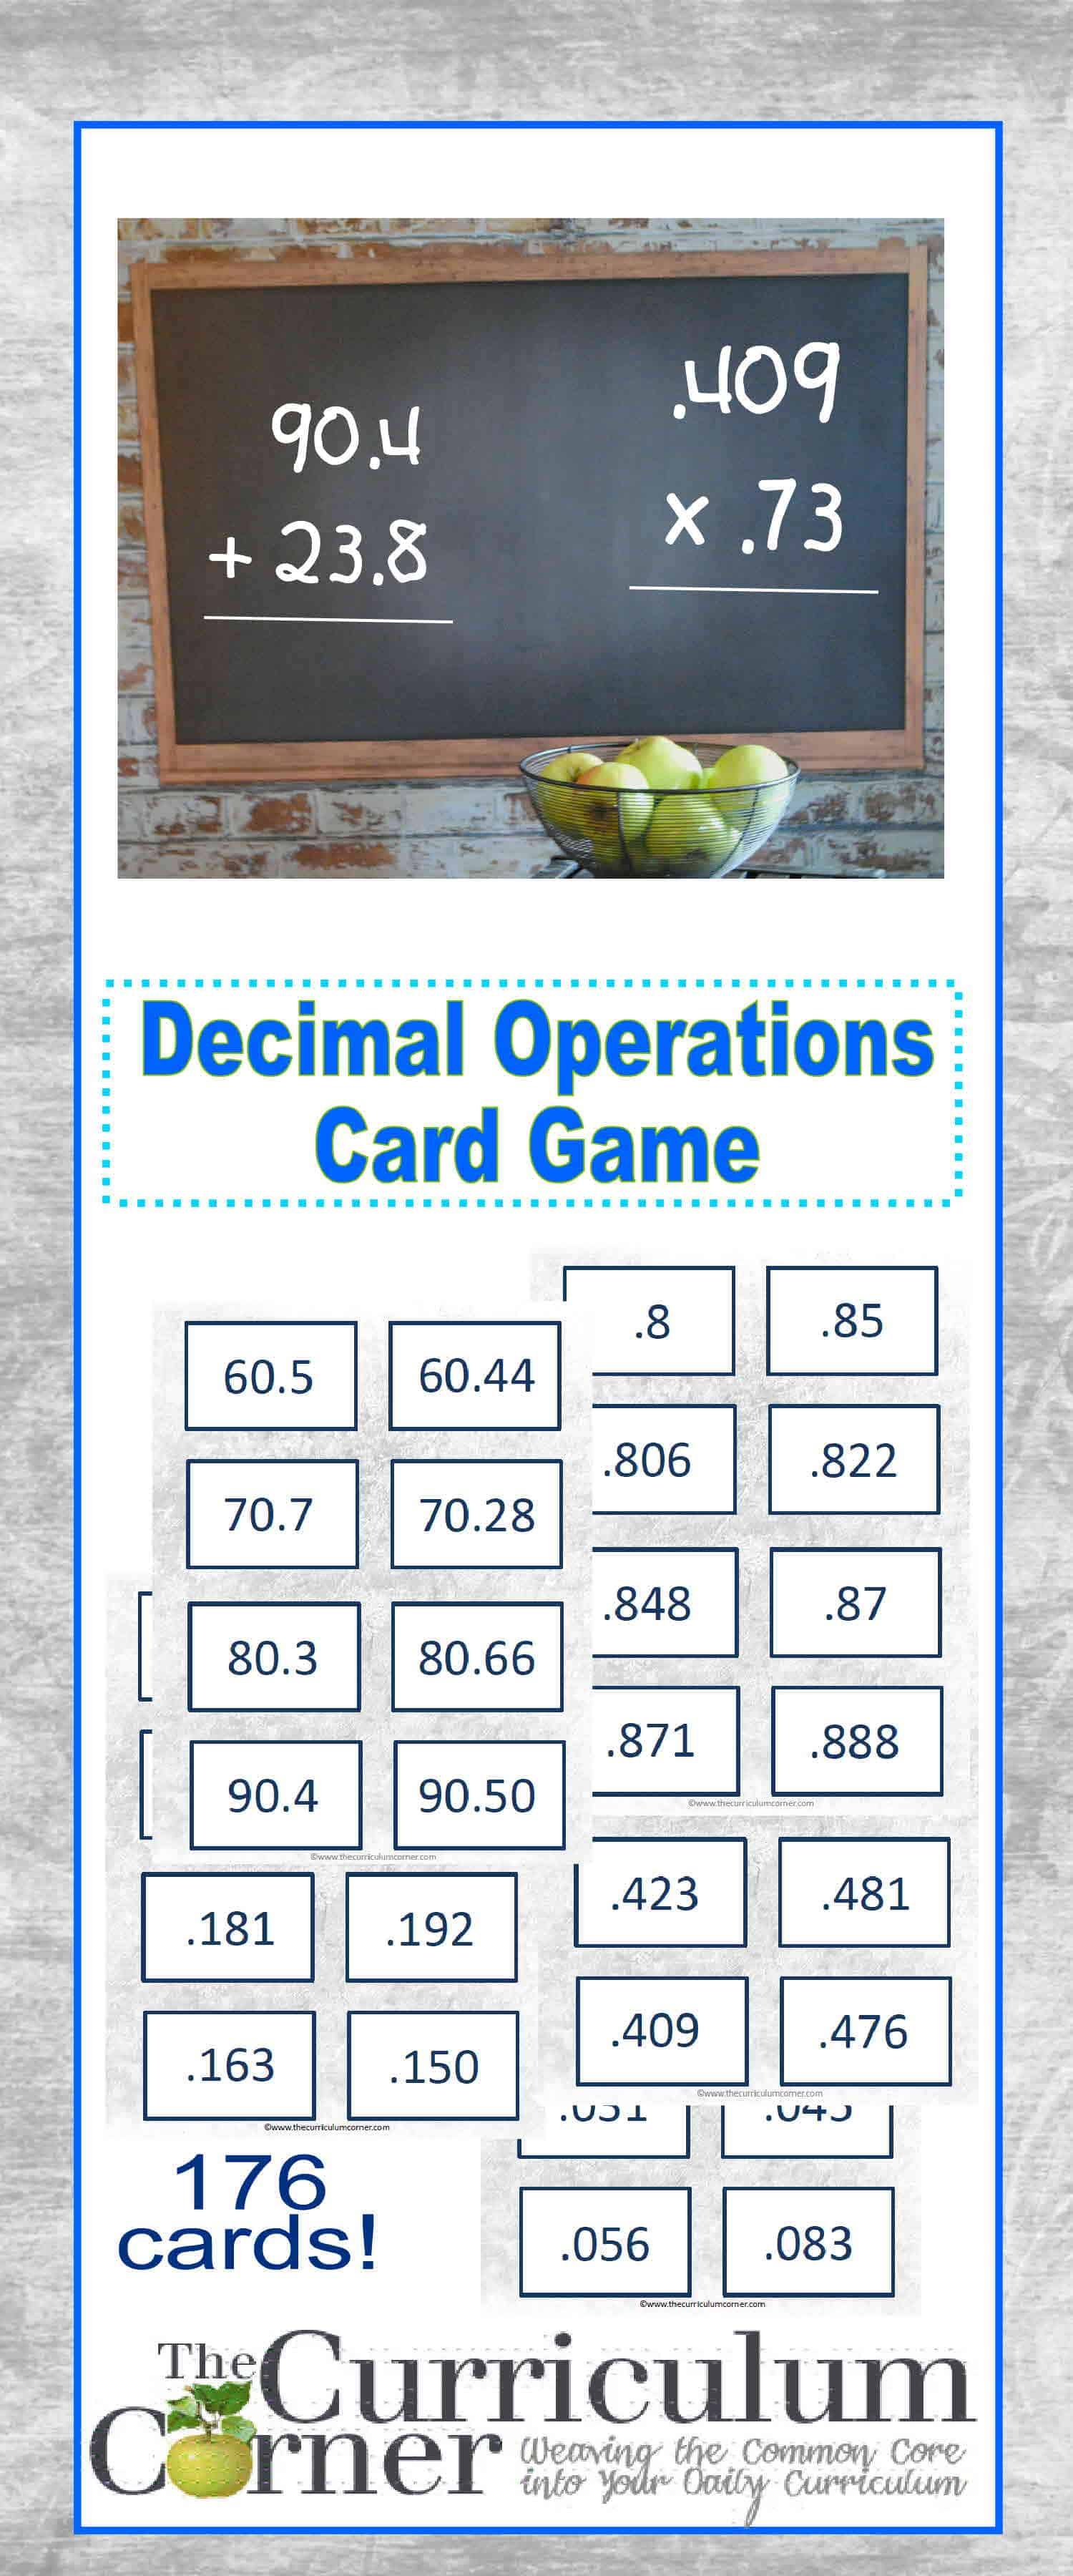 Decimal Operations Simple Card Game